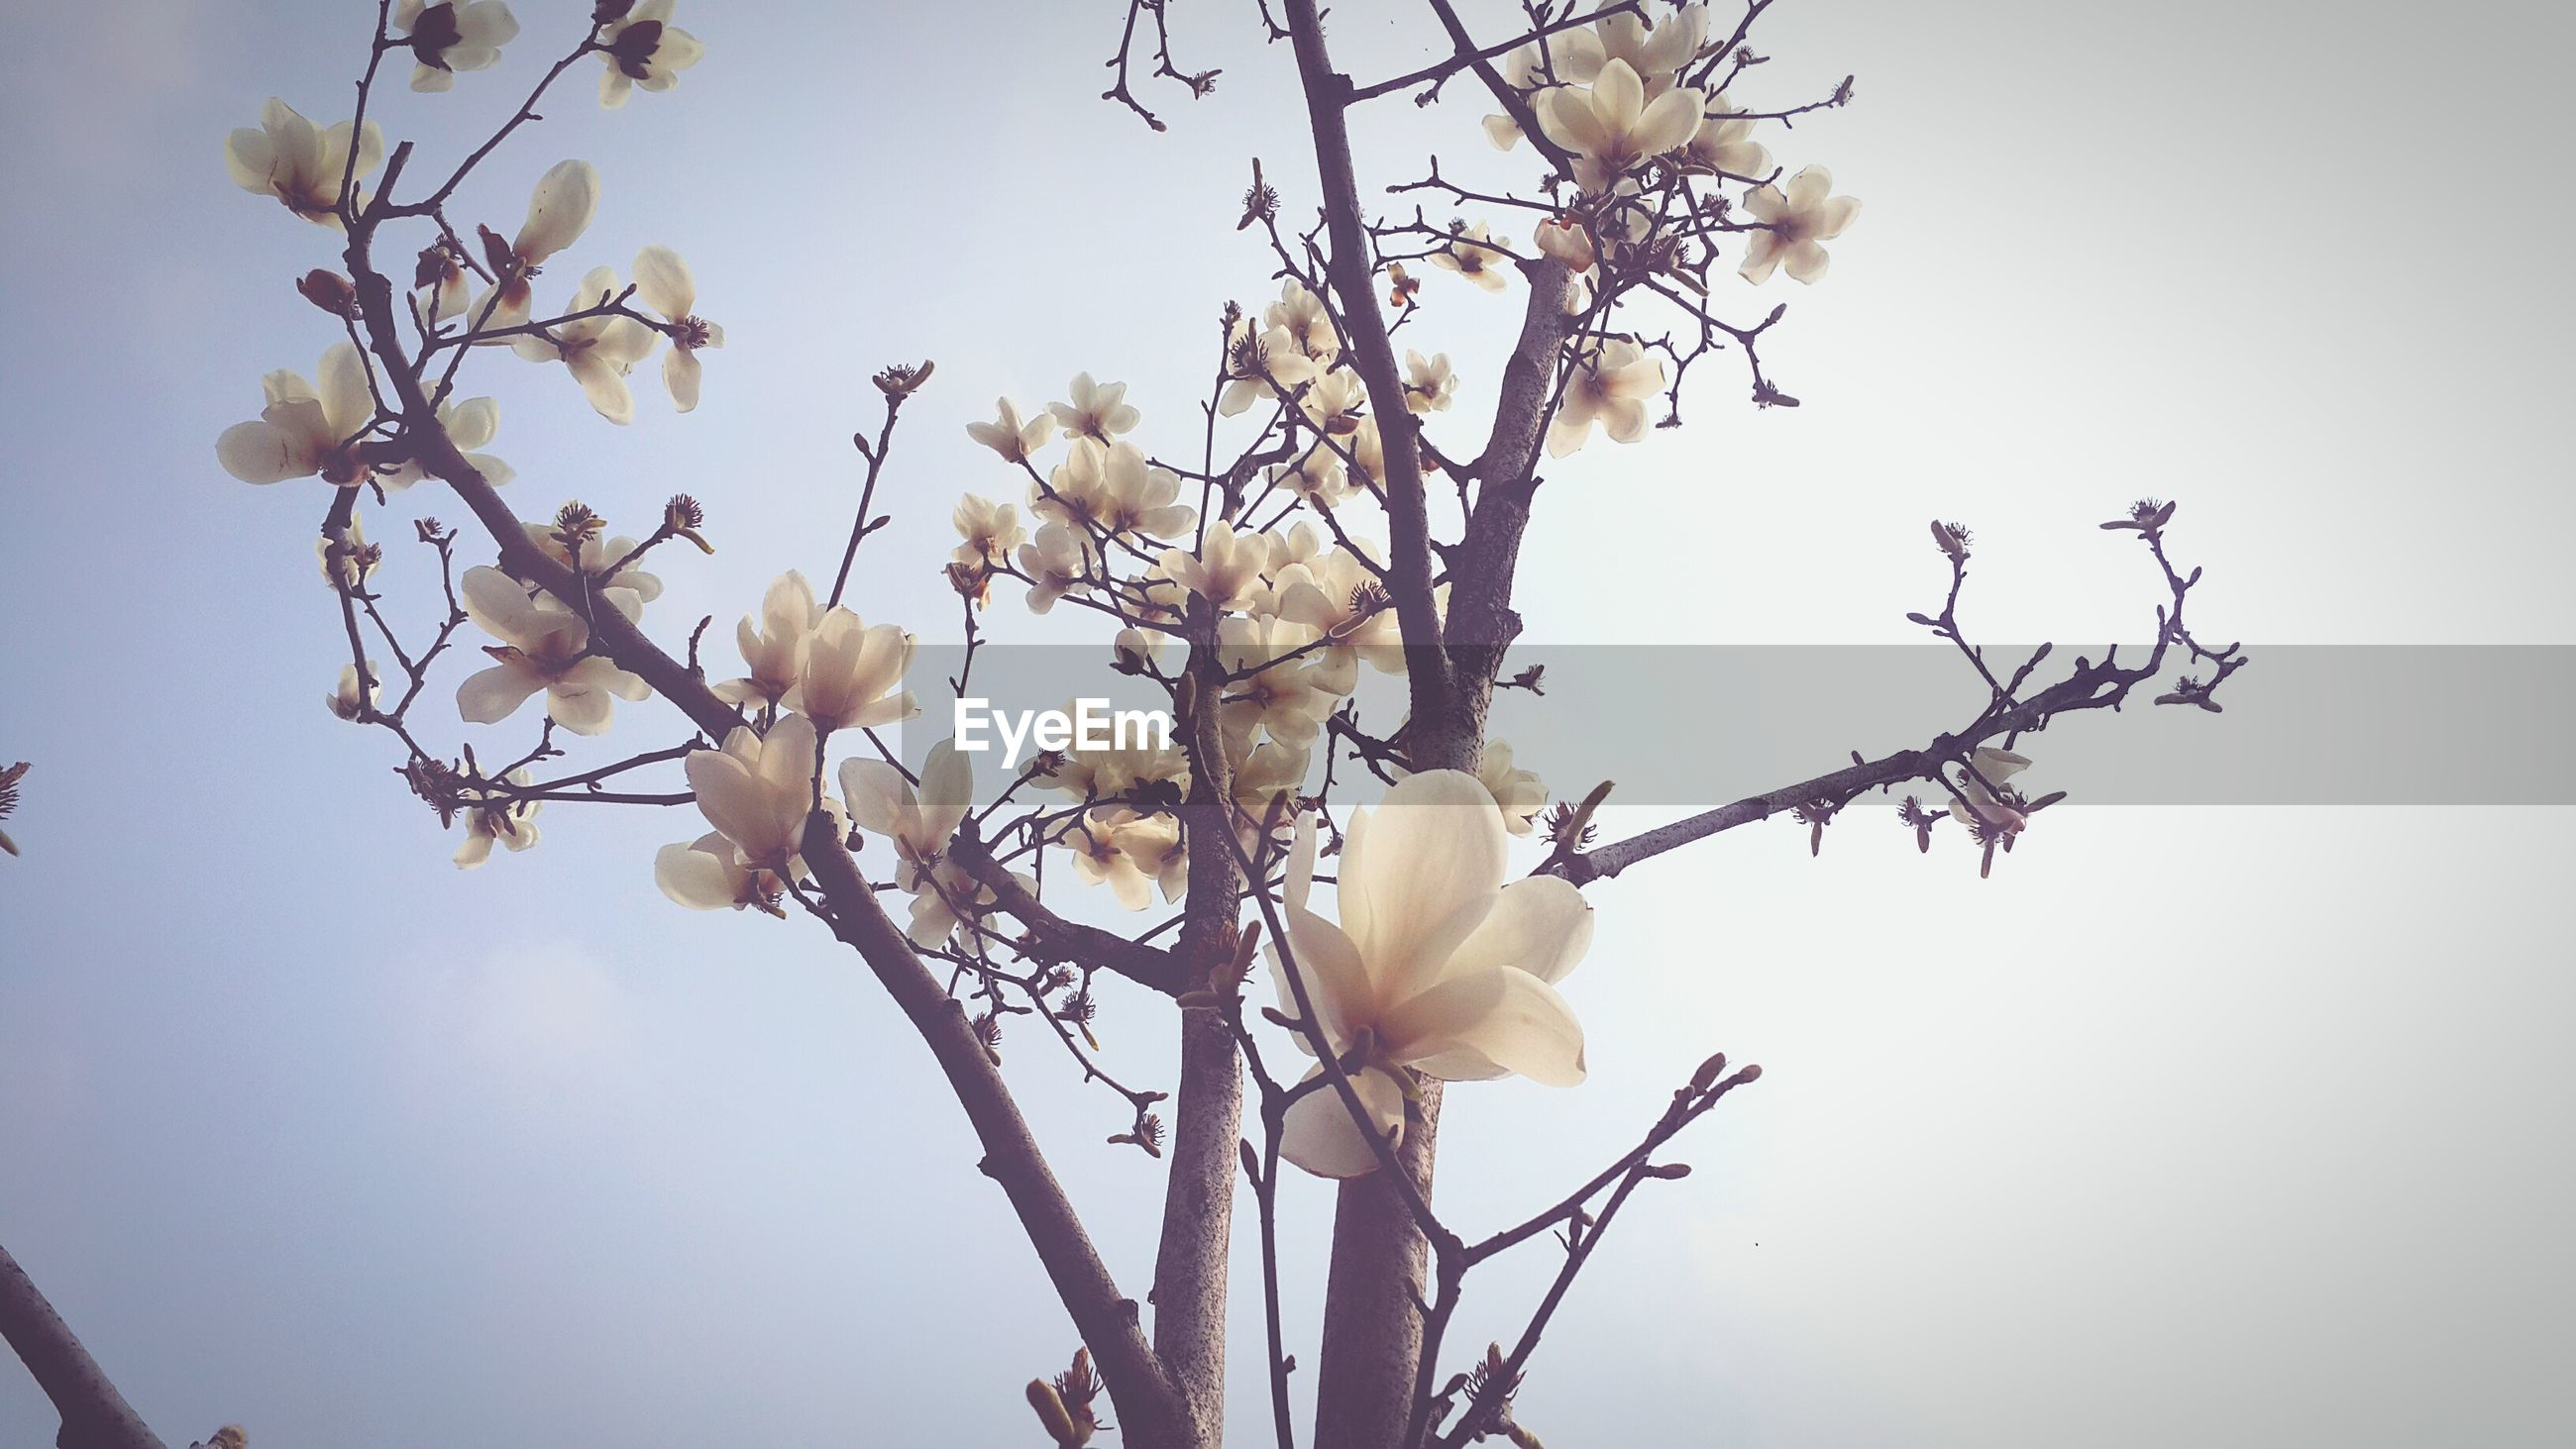 flower, branch, tree, fragility, magnolia, beauty in nature, nature, low angle view, petal, growth, twig, freshness, no people, day, flower head, sky, outdoors, springtime, plant, blooming, close-up